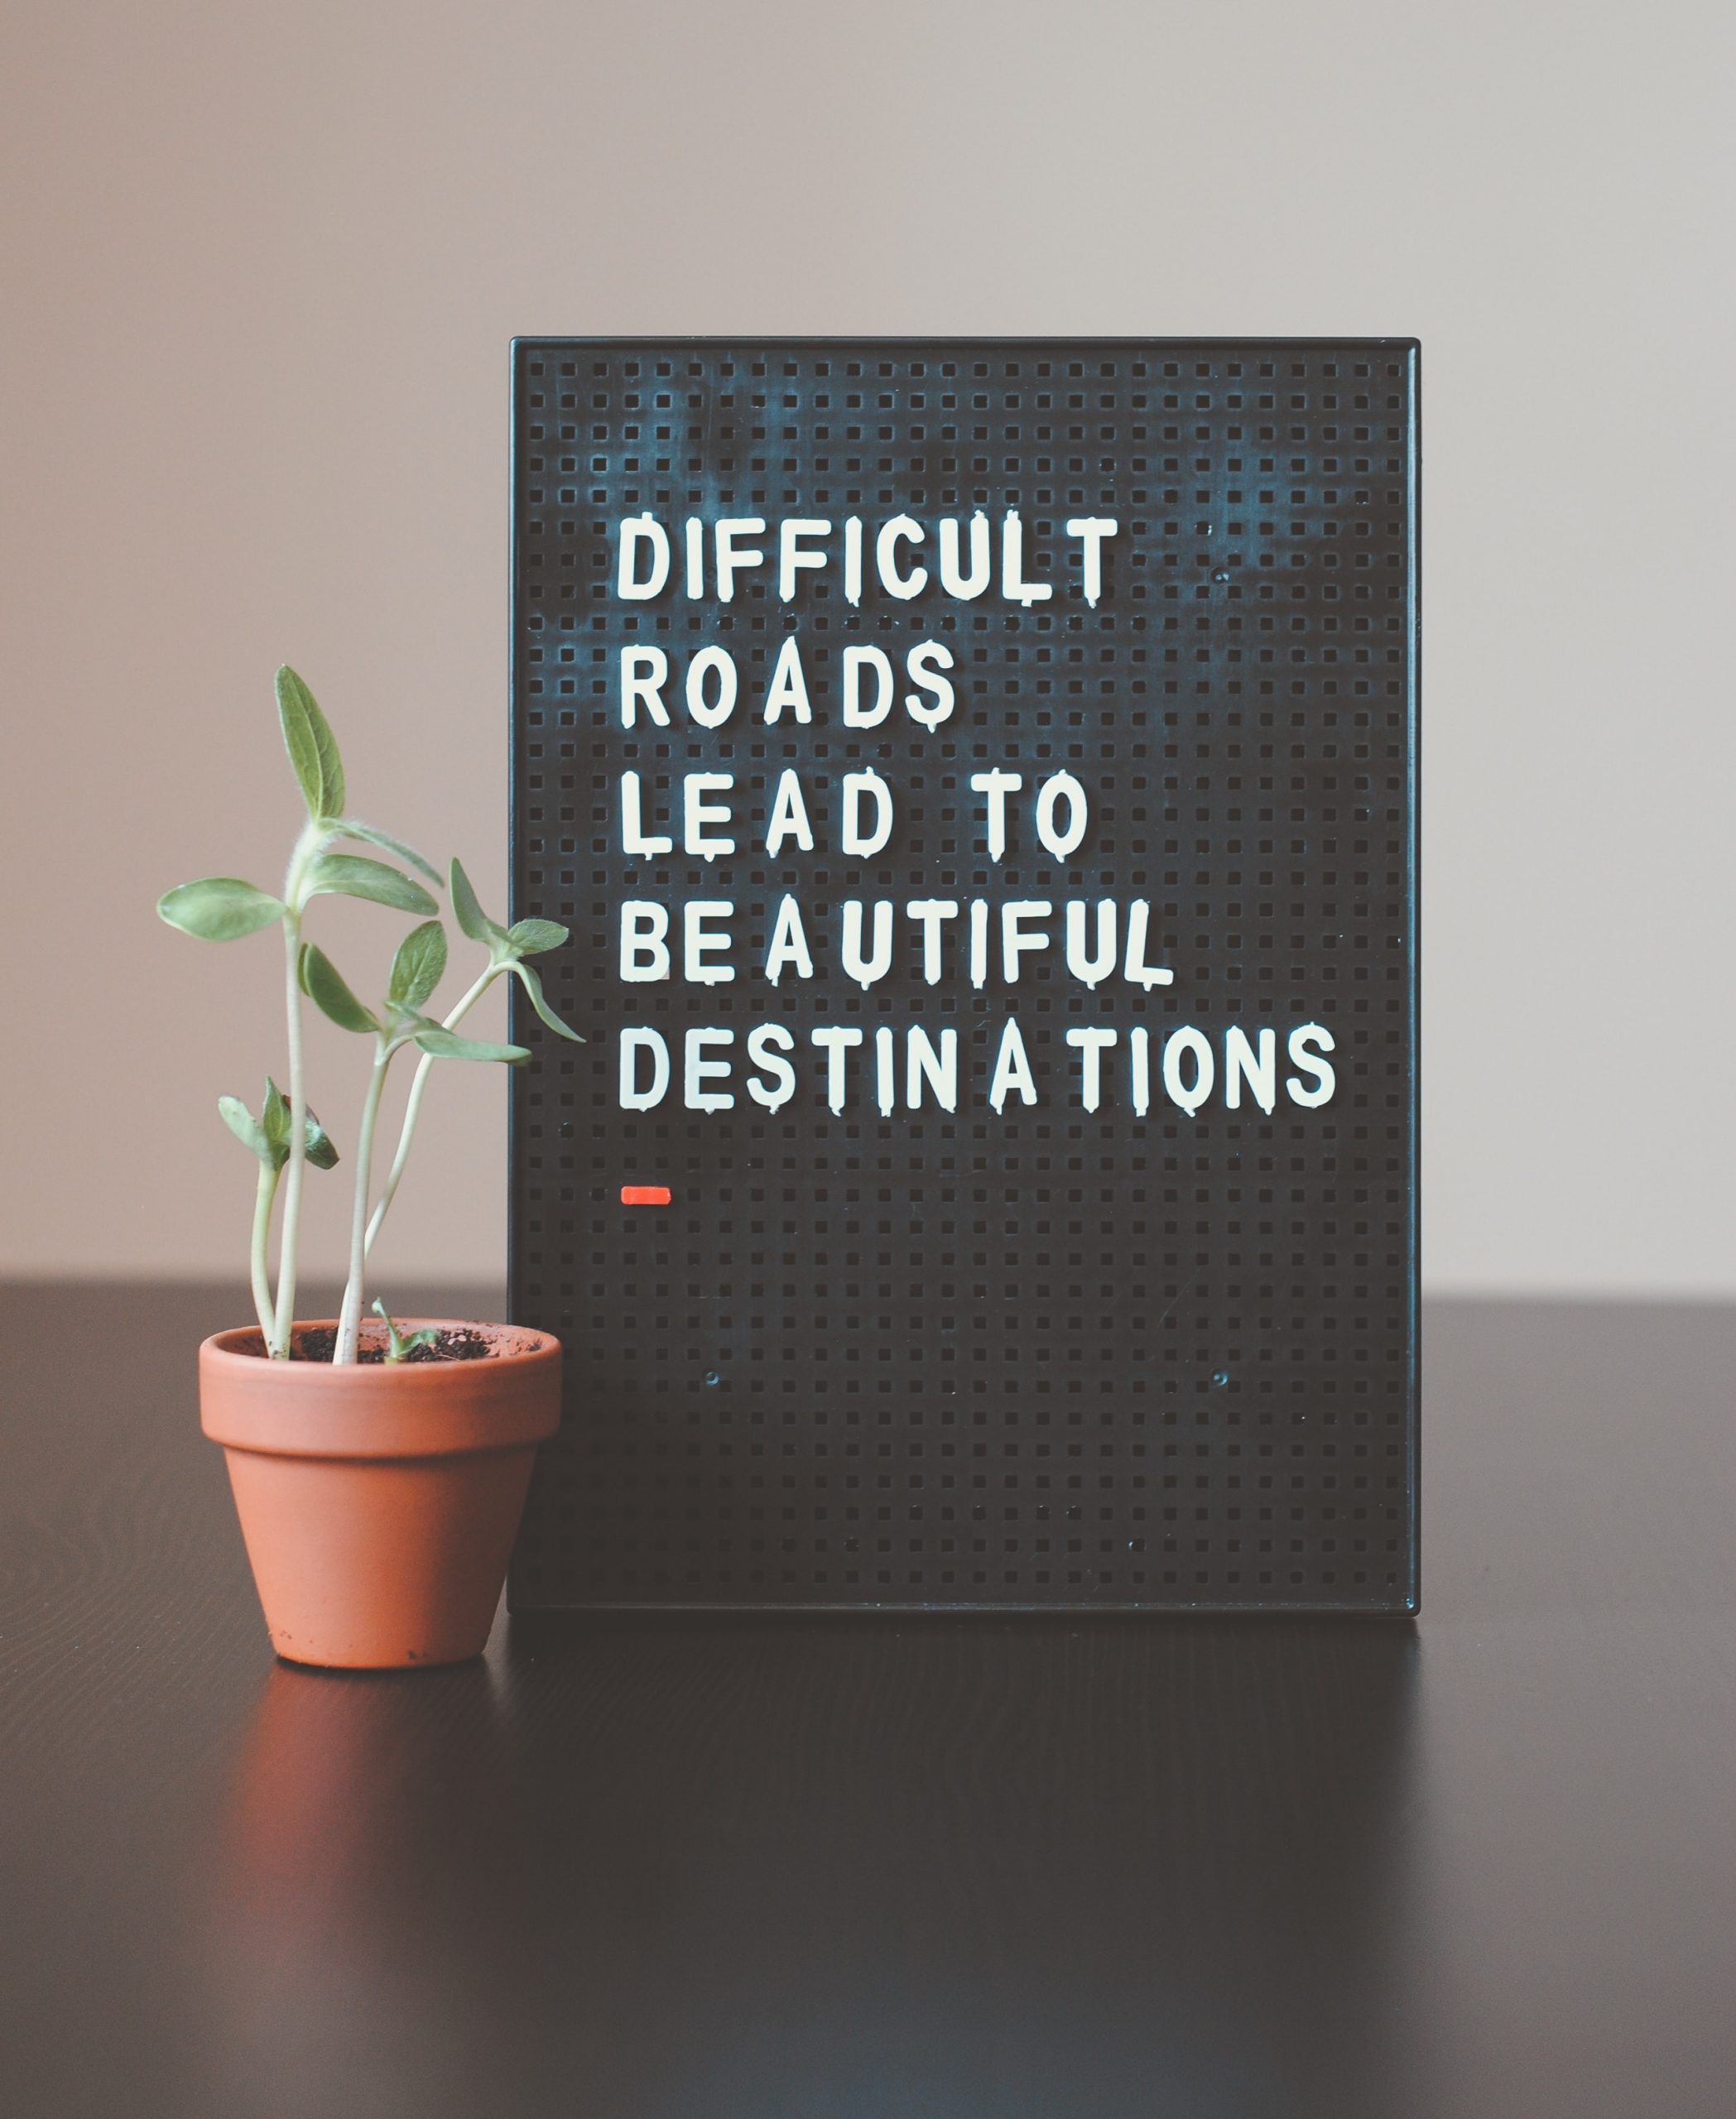 A black letter board stands on a table top, with white letters that read 'Difficult roads lead to beautiful destinations'. A growing plant is next to the letter board.